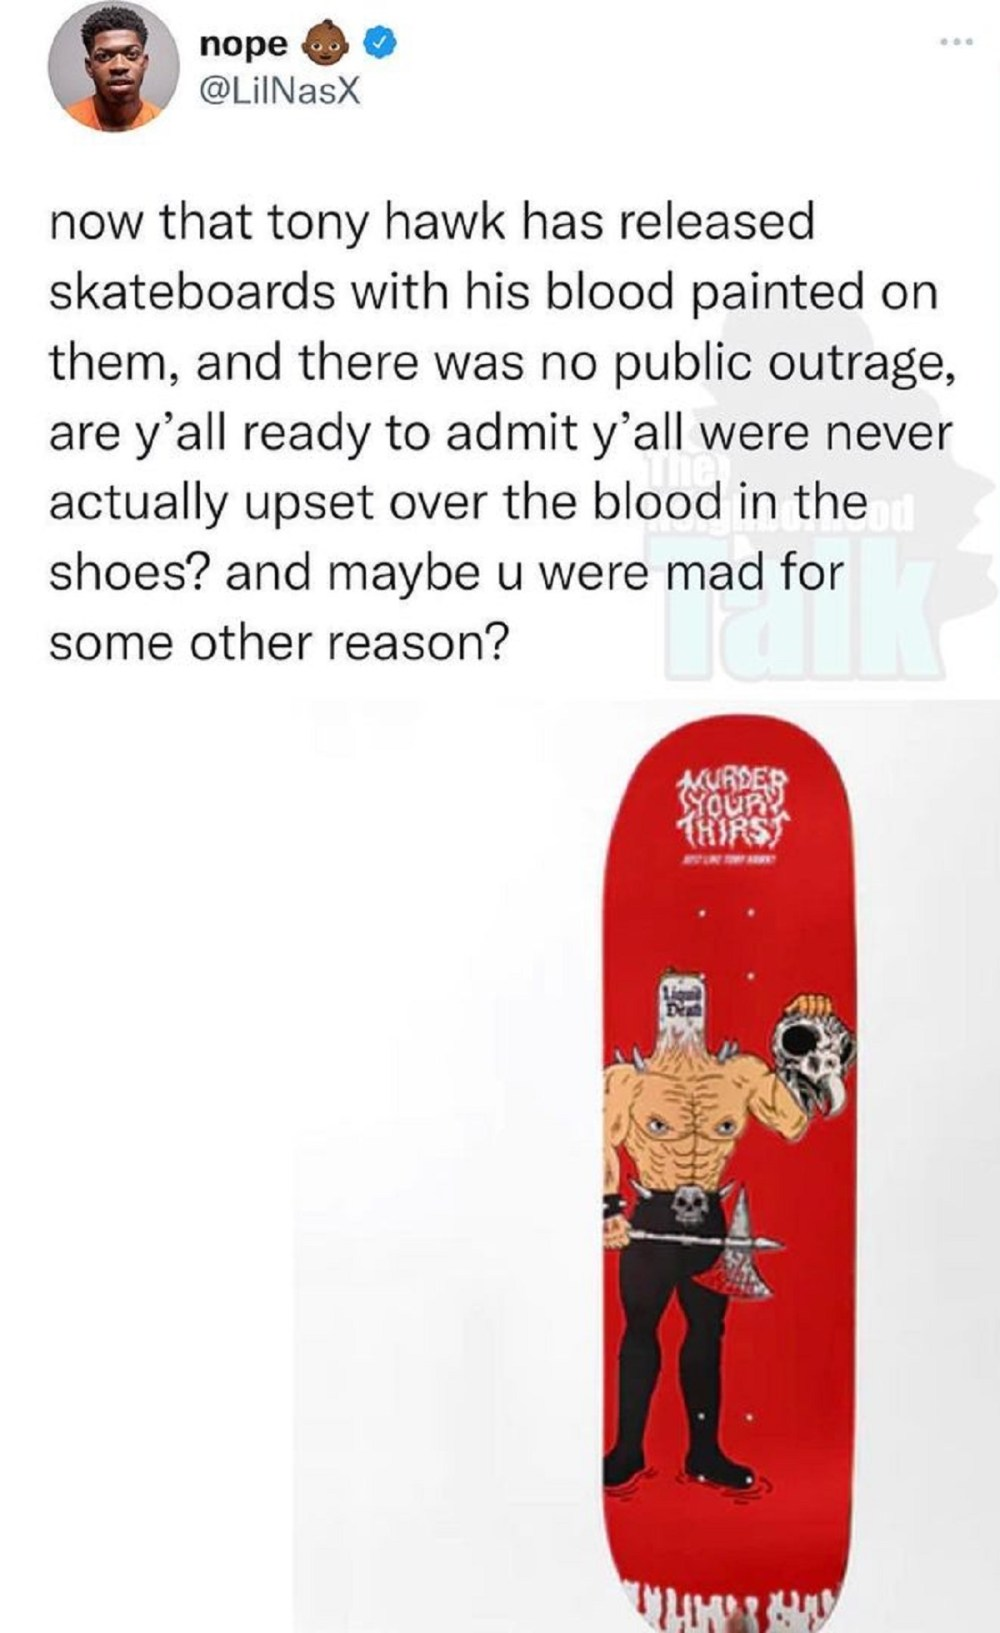 Lil Nas X asks why no one is outraged over Tony Hawk releasing skateboard painted in his own blood